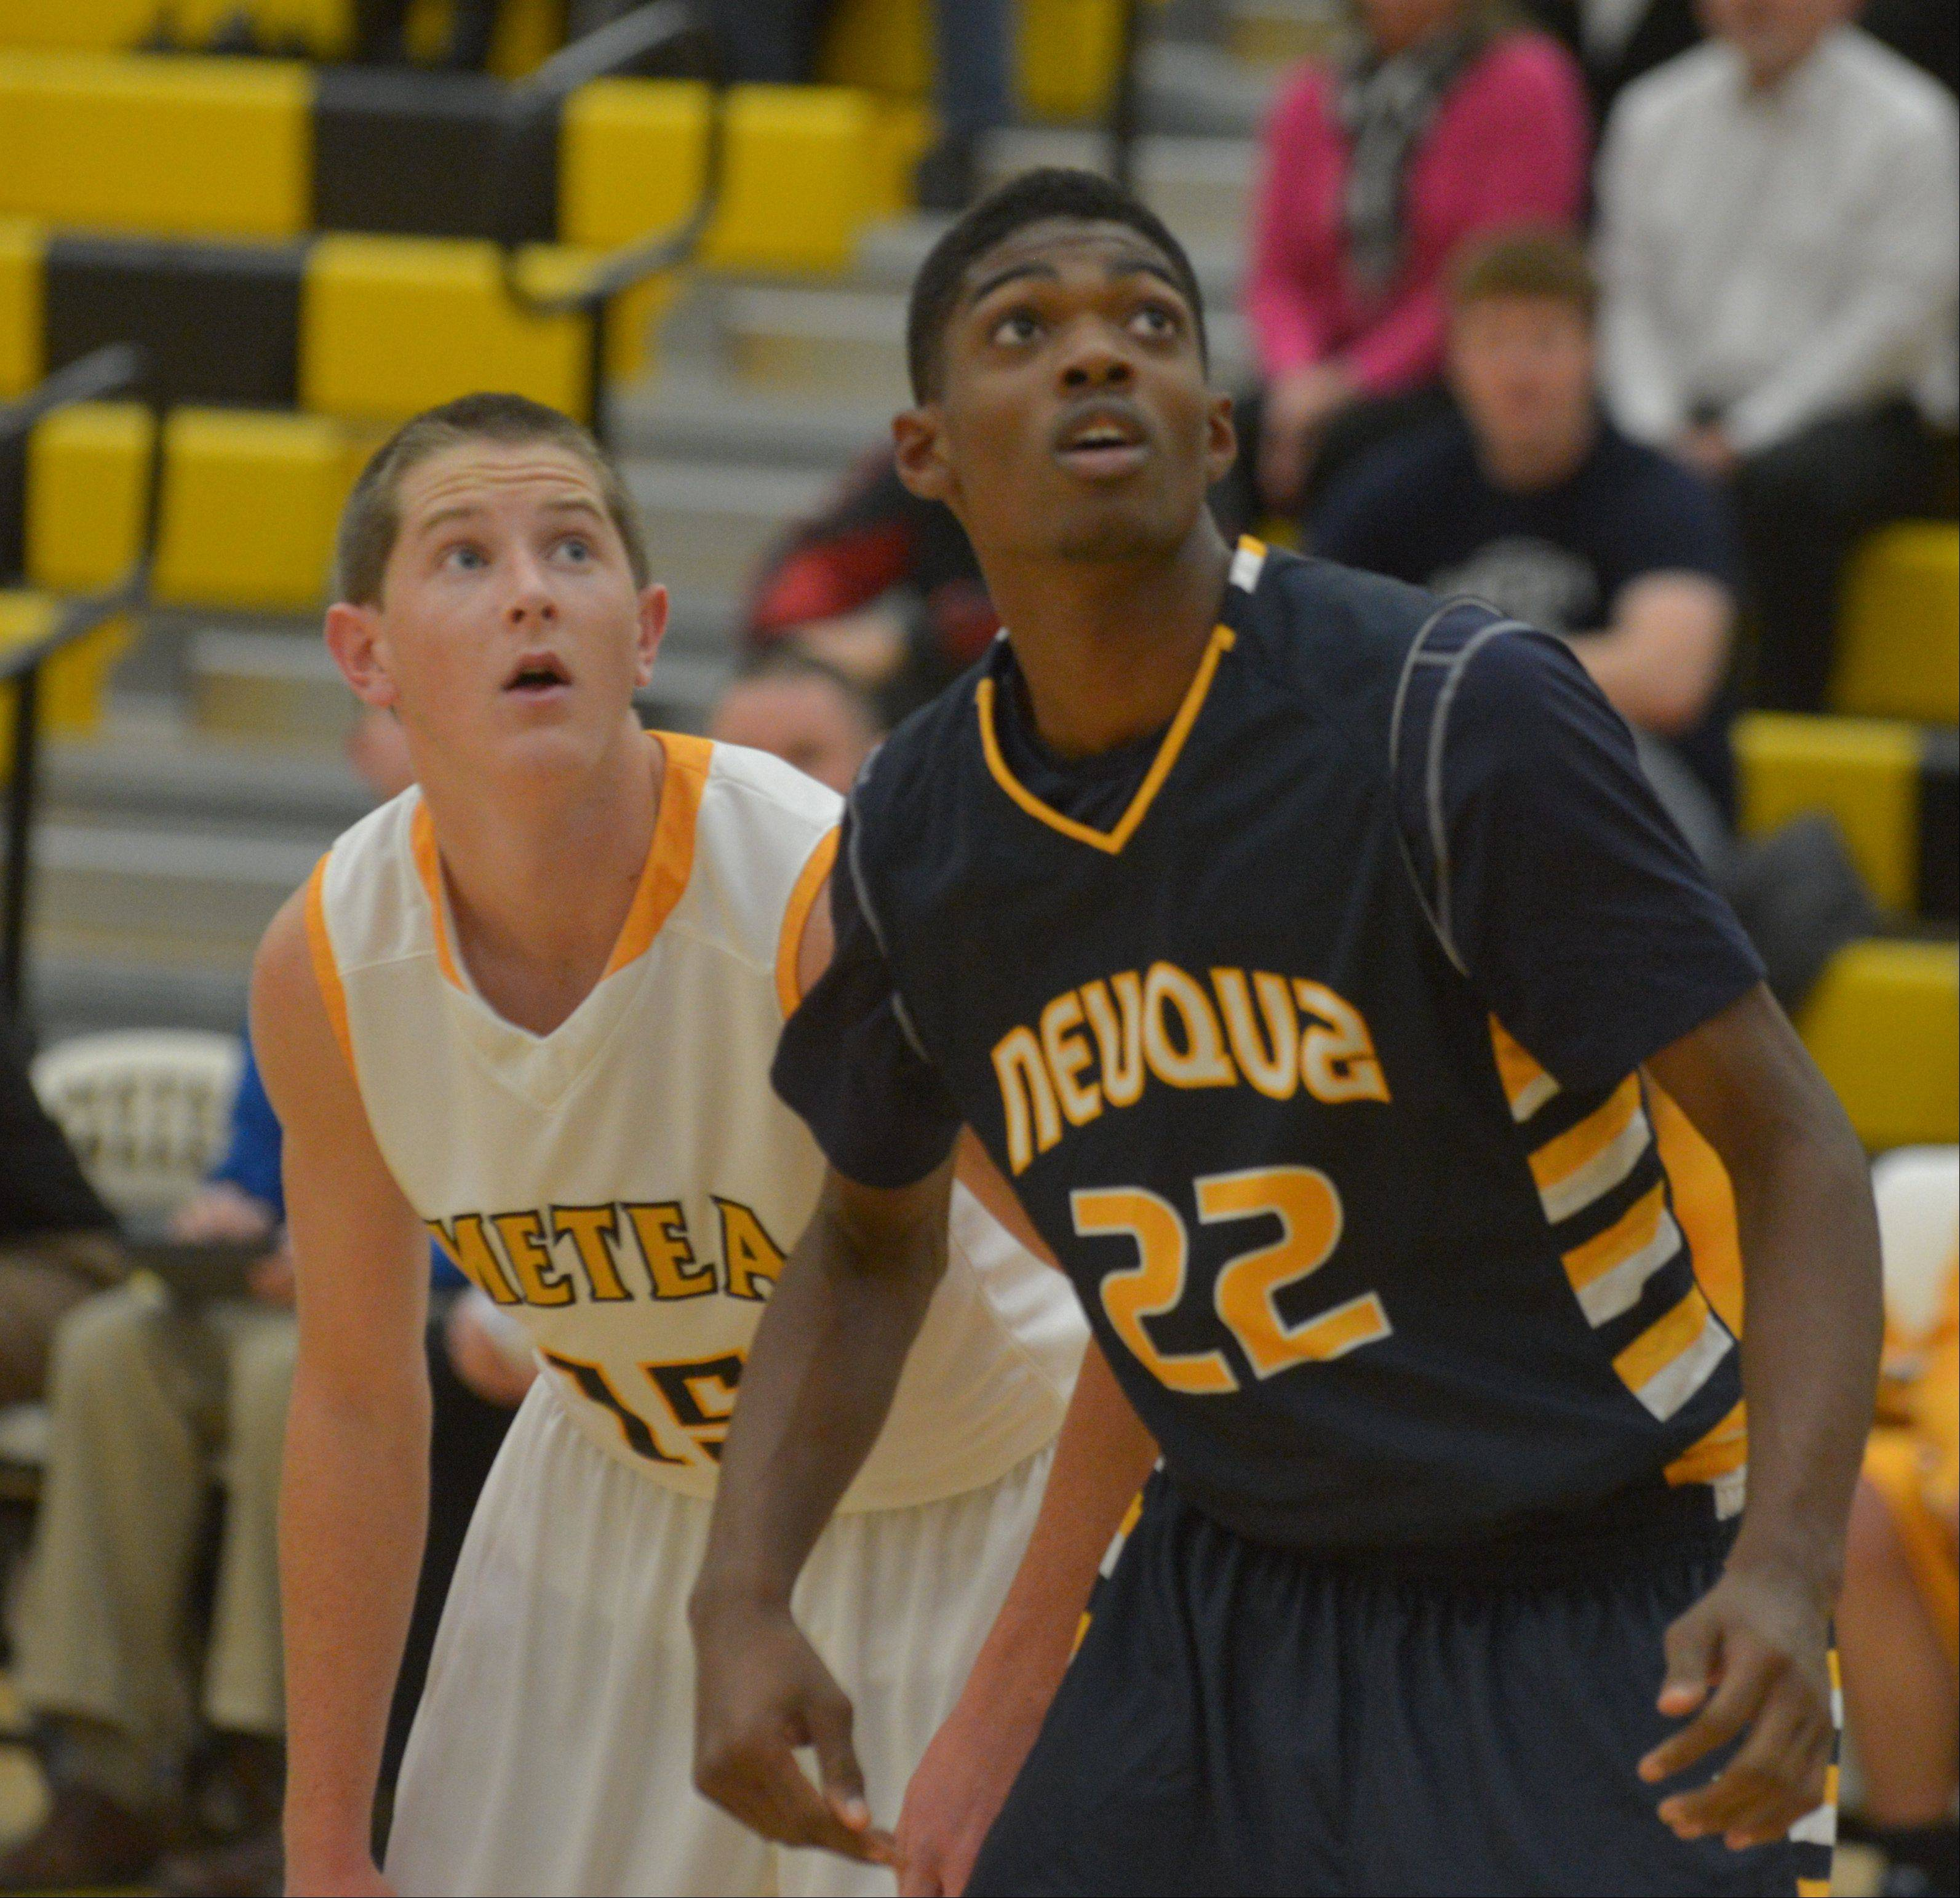 Photos from the Neuqua Valley at Metea Valley boys basketball game on Thursday, Dec. 5.